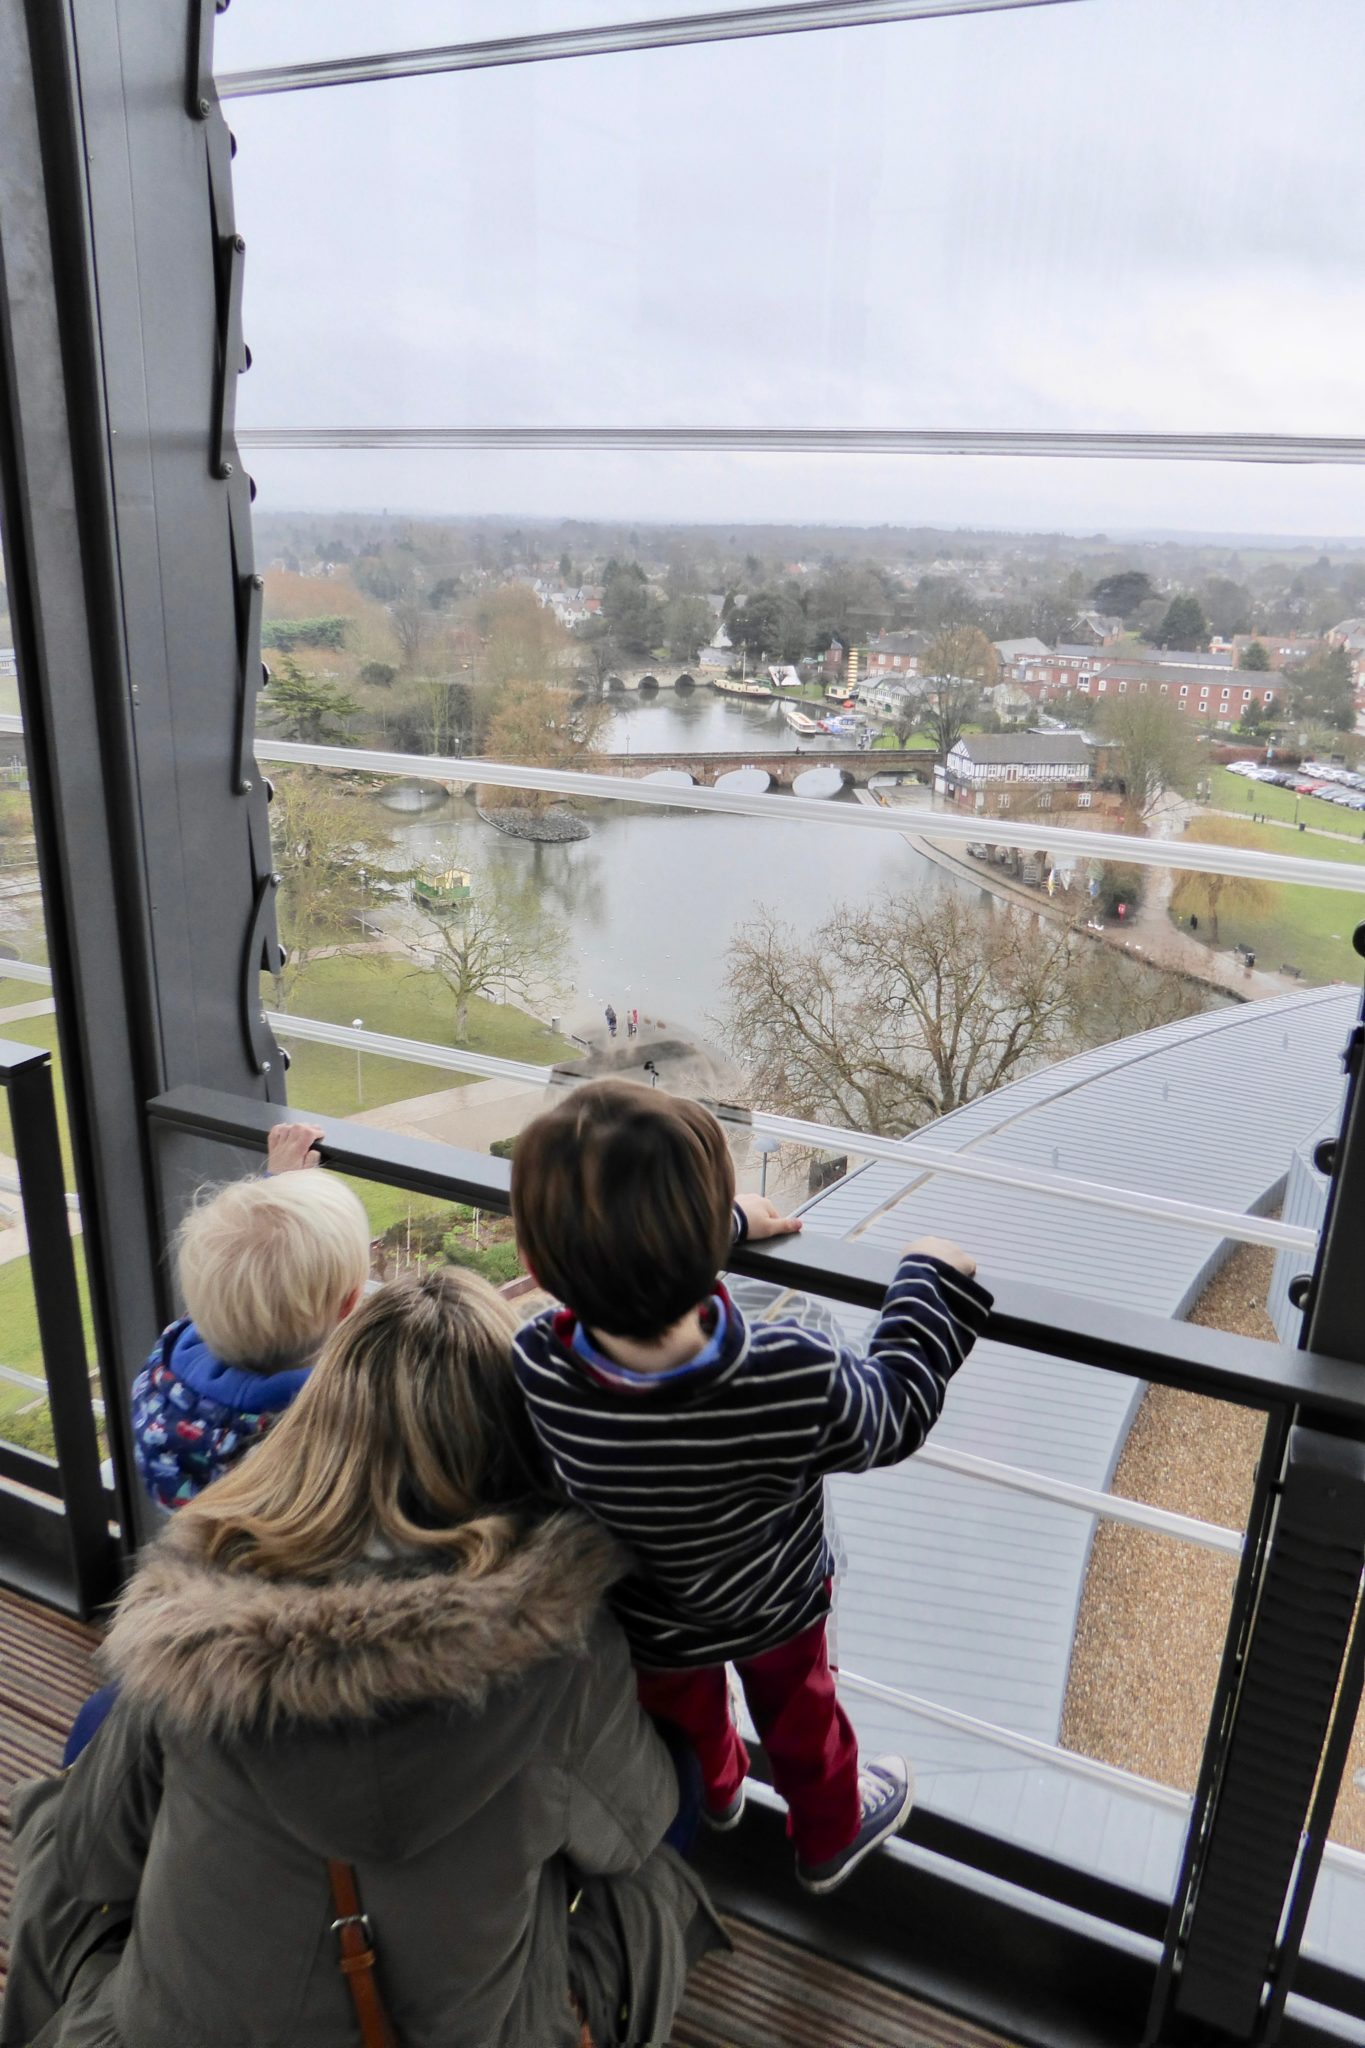 Things to do in Stratford-upon-Avon with kids